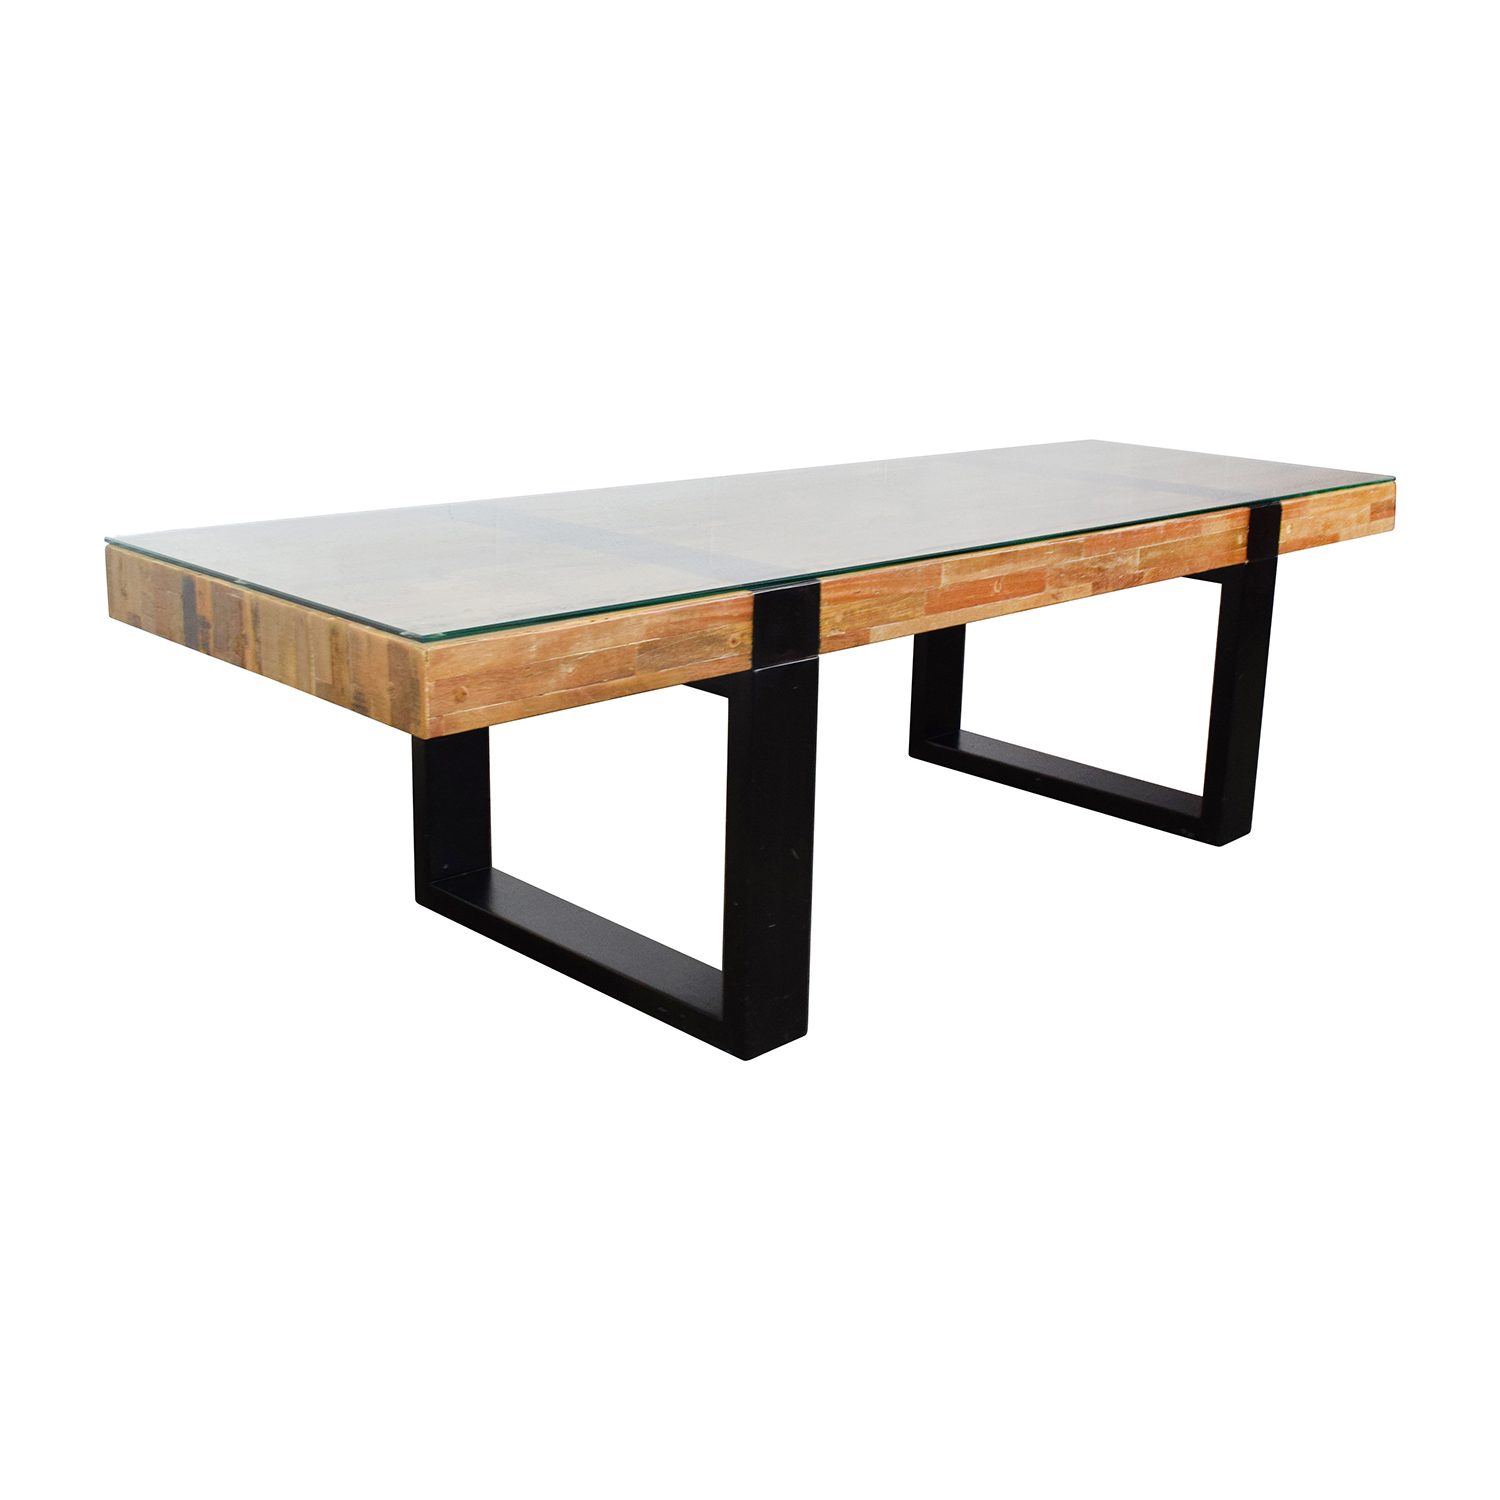 Crate and barrel crate barrel seguro rectangular wood table coffee tables